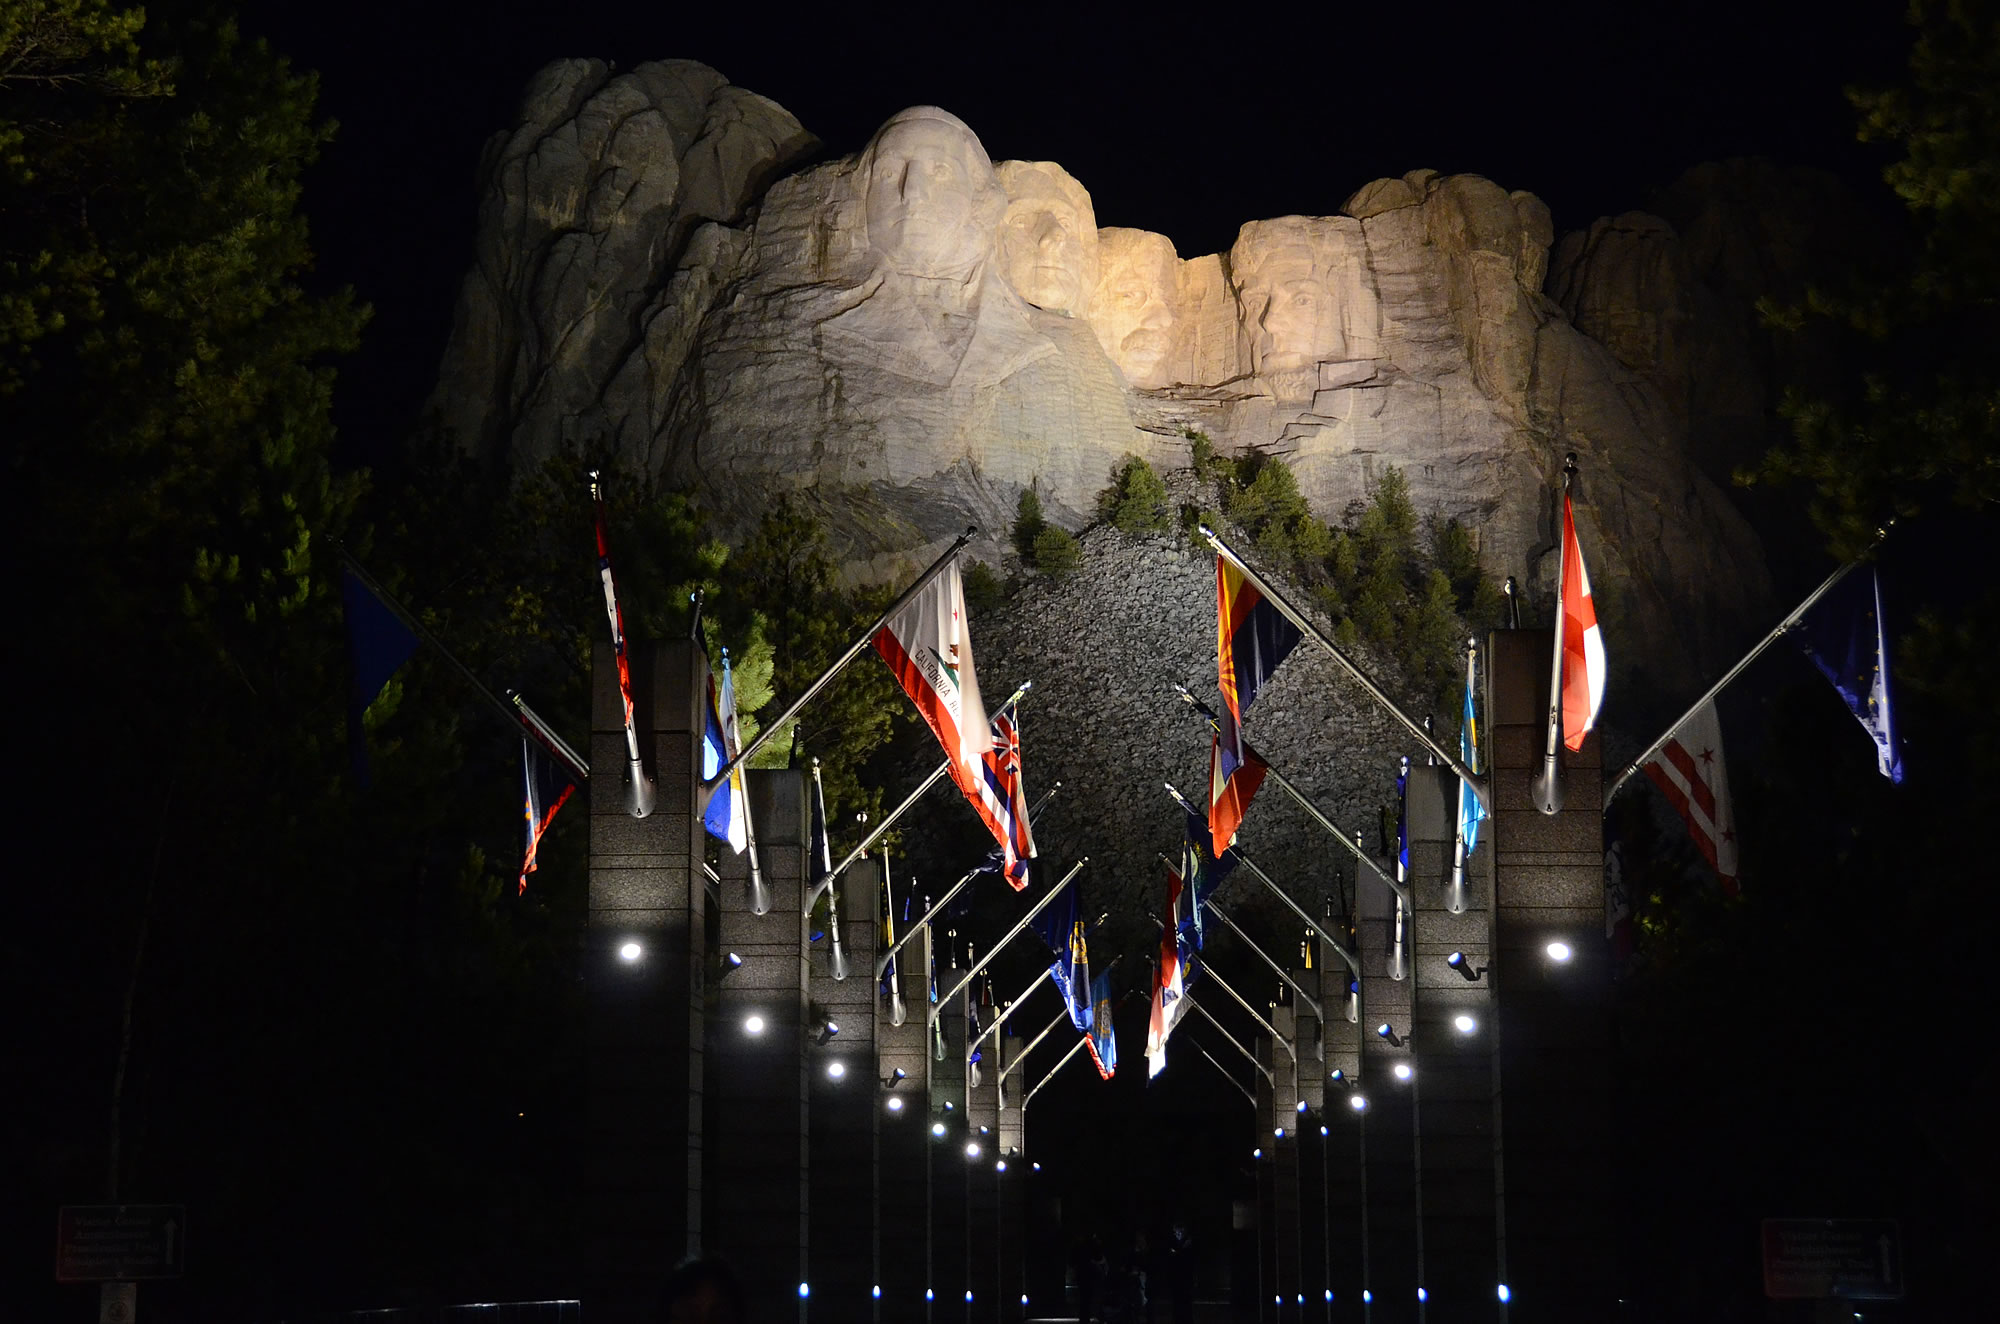 After Dinner We Went Off To See The Lighting Ceremony At Mt Rushmore For Evening And & Mount Rushmore Evening Lighting Ceremony | Iron Blog azcodes.com